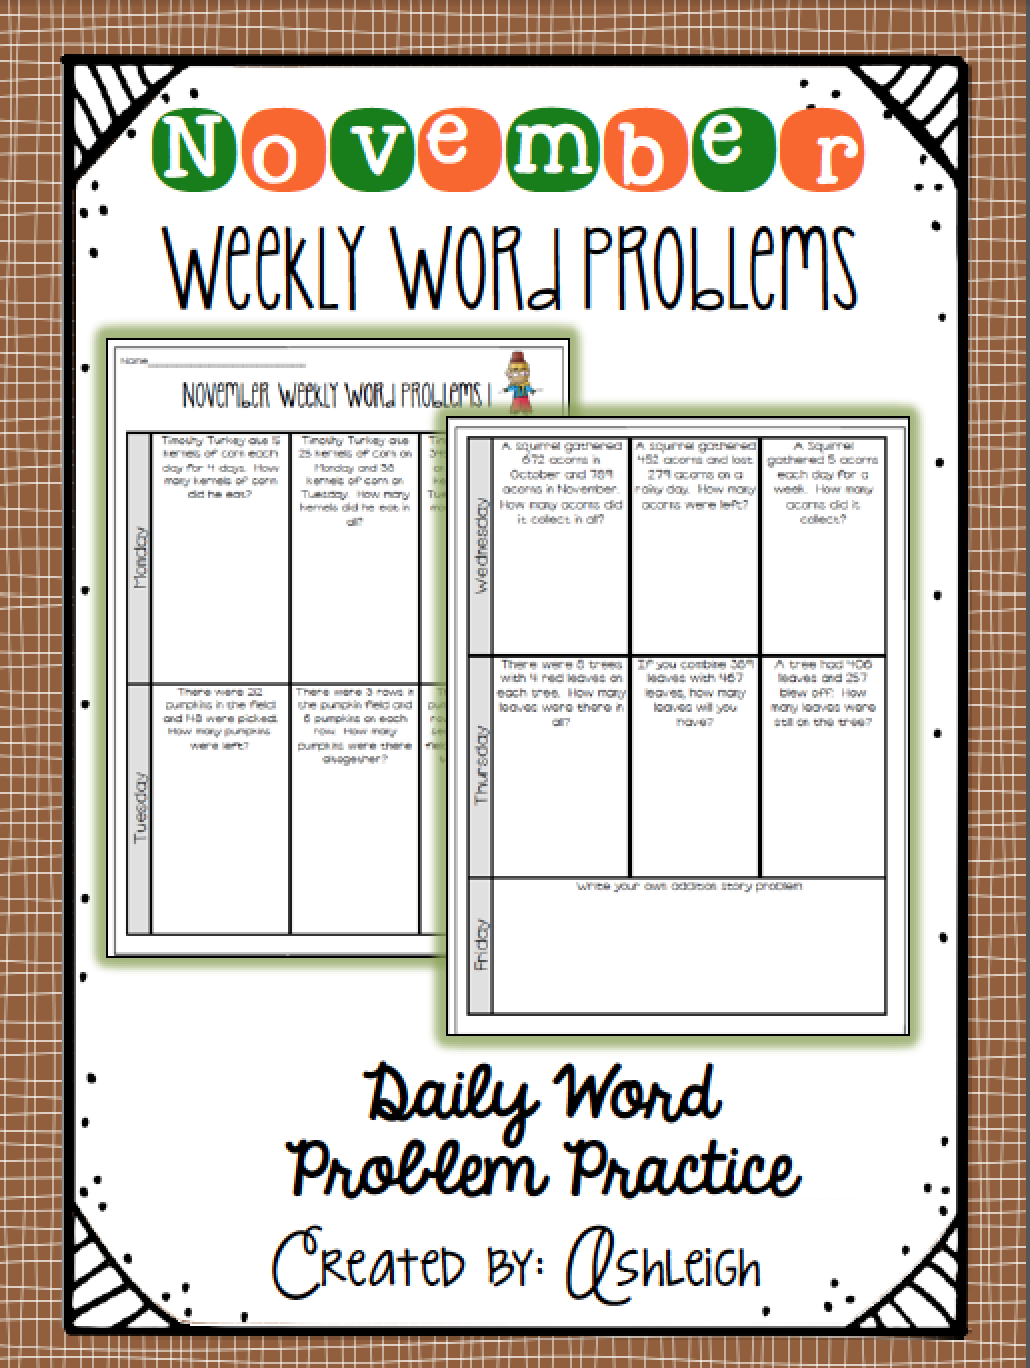 Free Weekly Word Problems For The Entire Month Of November Also Includes Constructed Response